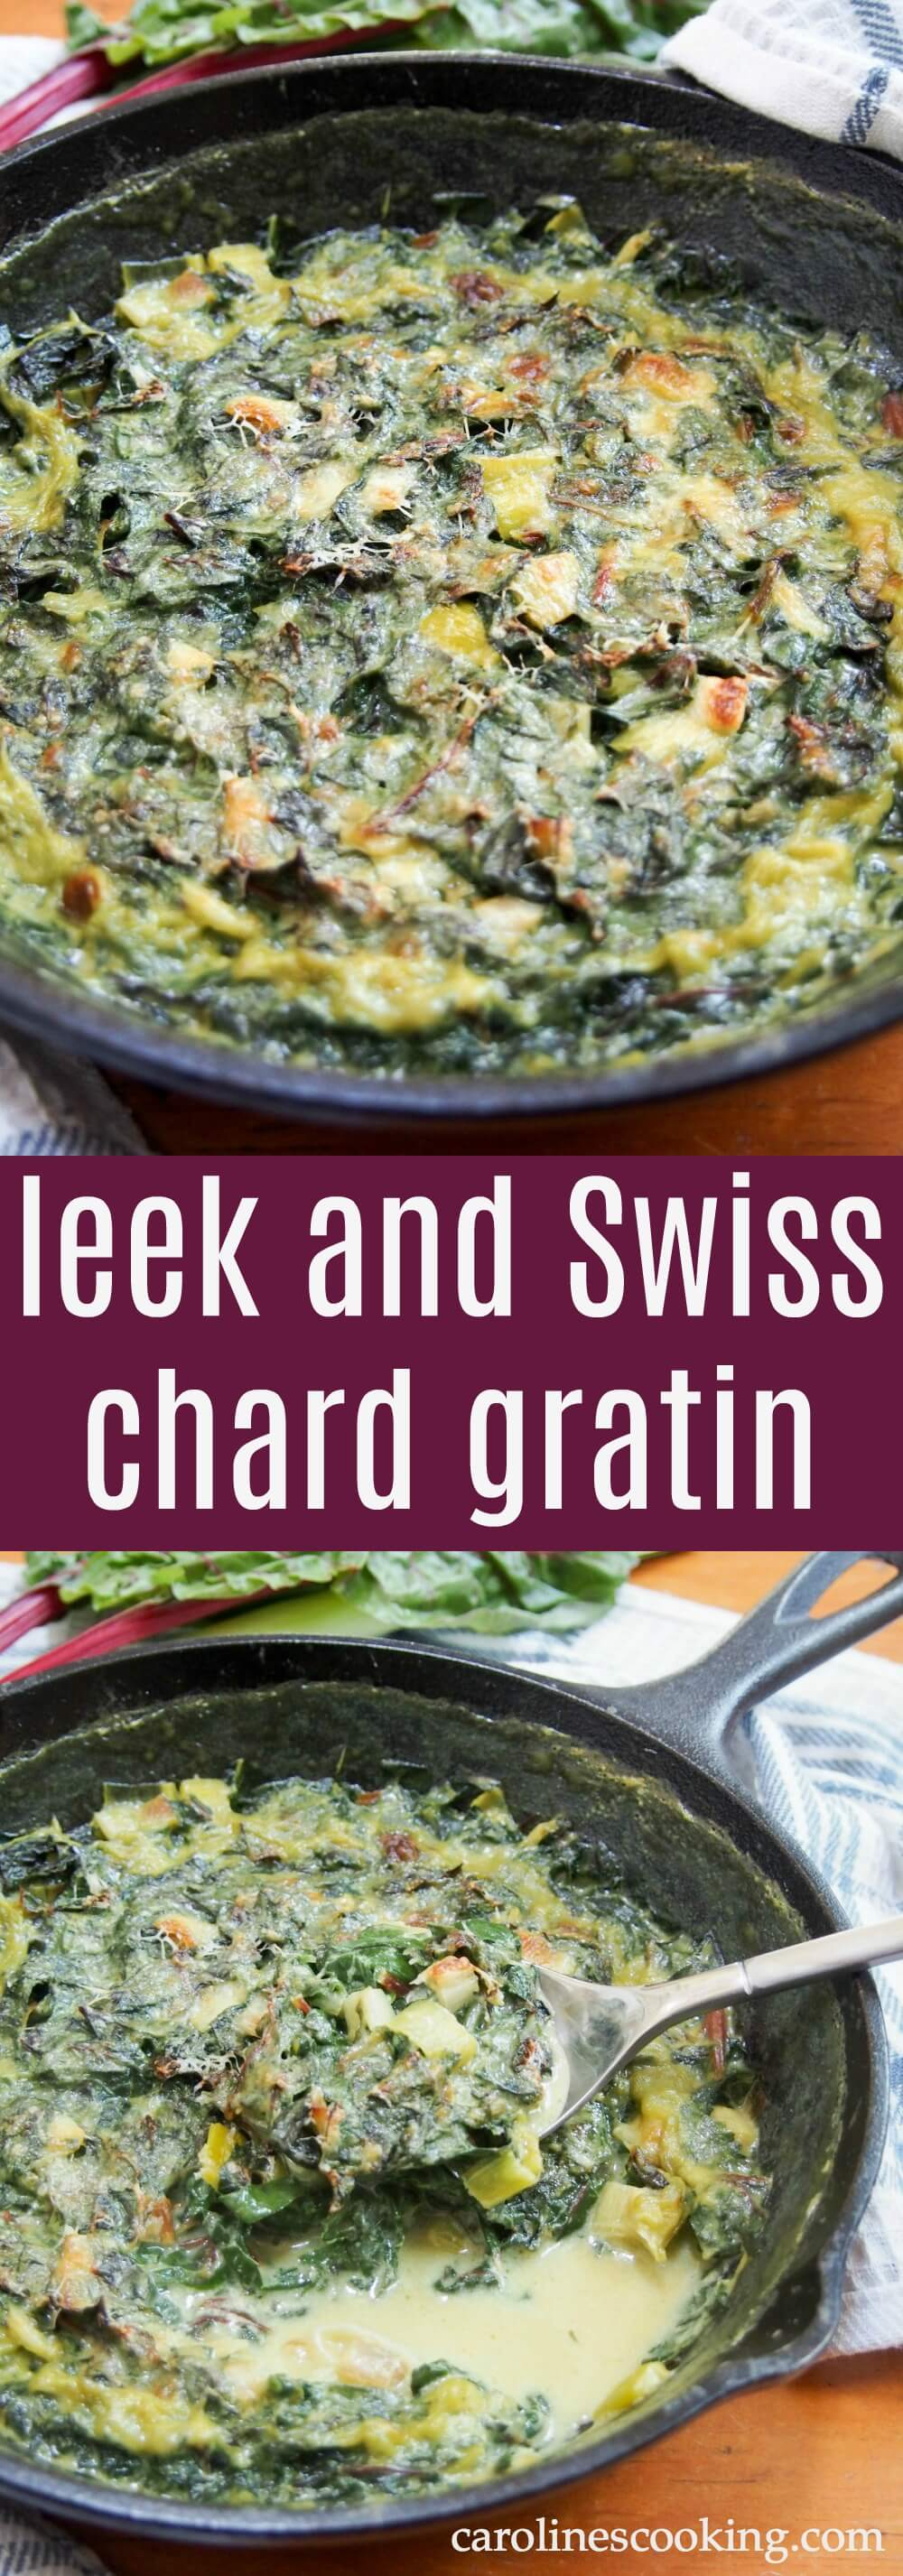 This leek and Swiss chard gratin is easy to make and wonderfully comforting, smothered in a delicious cheesy sauce. A side dish that steals the show. It also makes a great easy vegetarian lunch as well. #chard #gratin #vegetarian